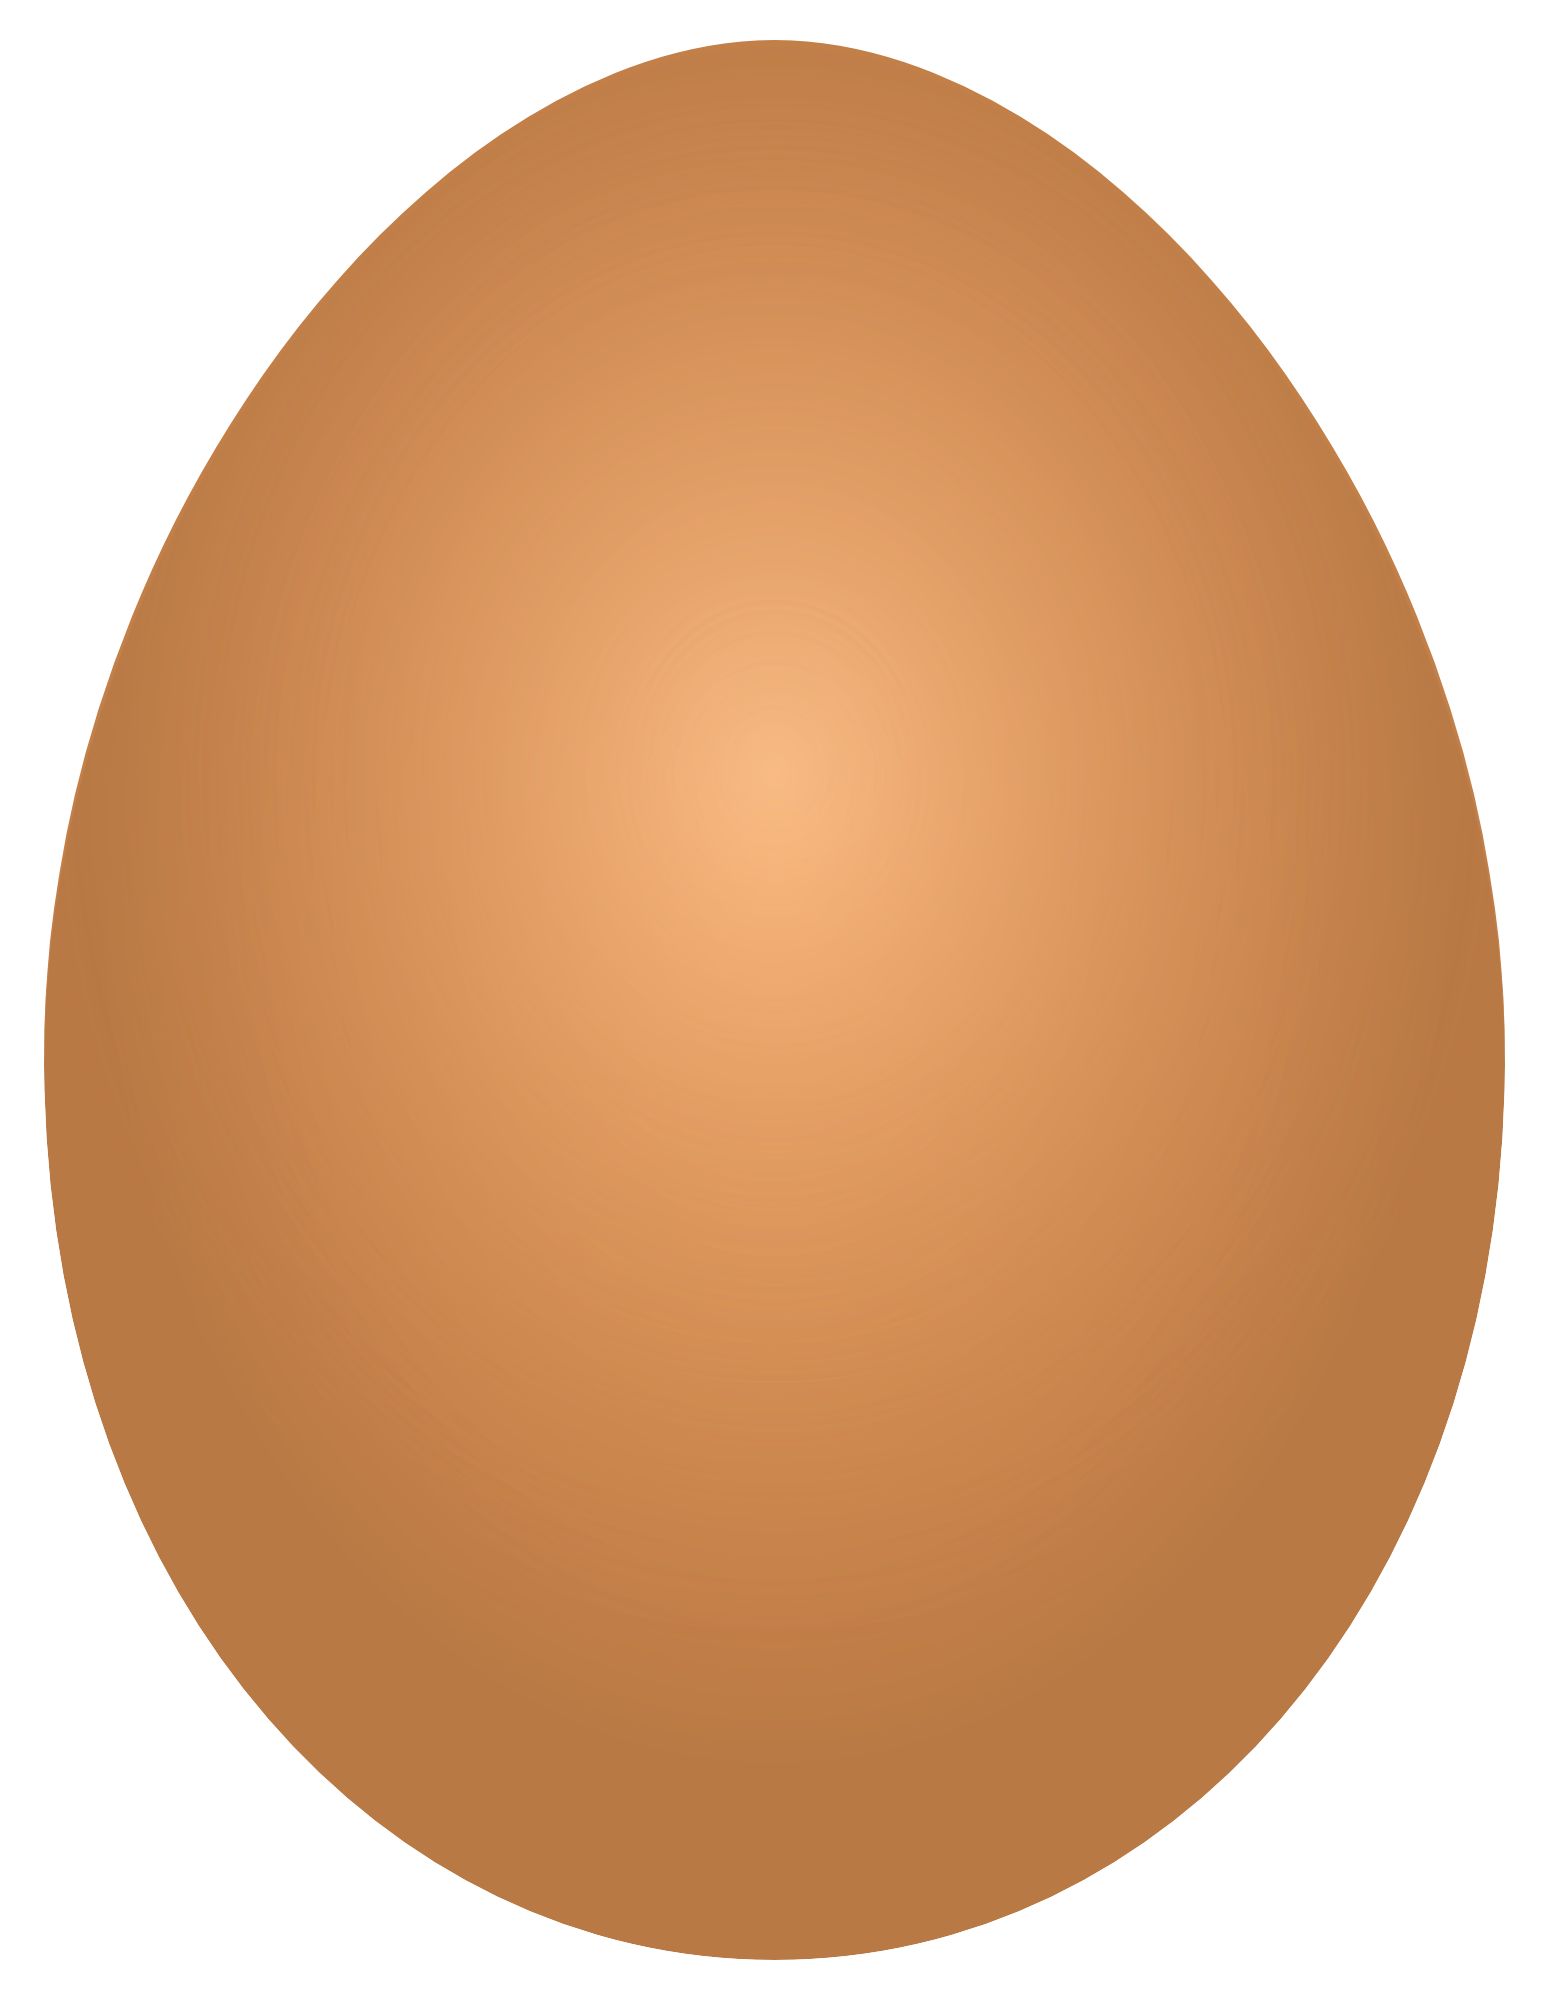 Fried agg free on. Race clipart egg spoon race